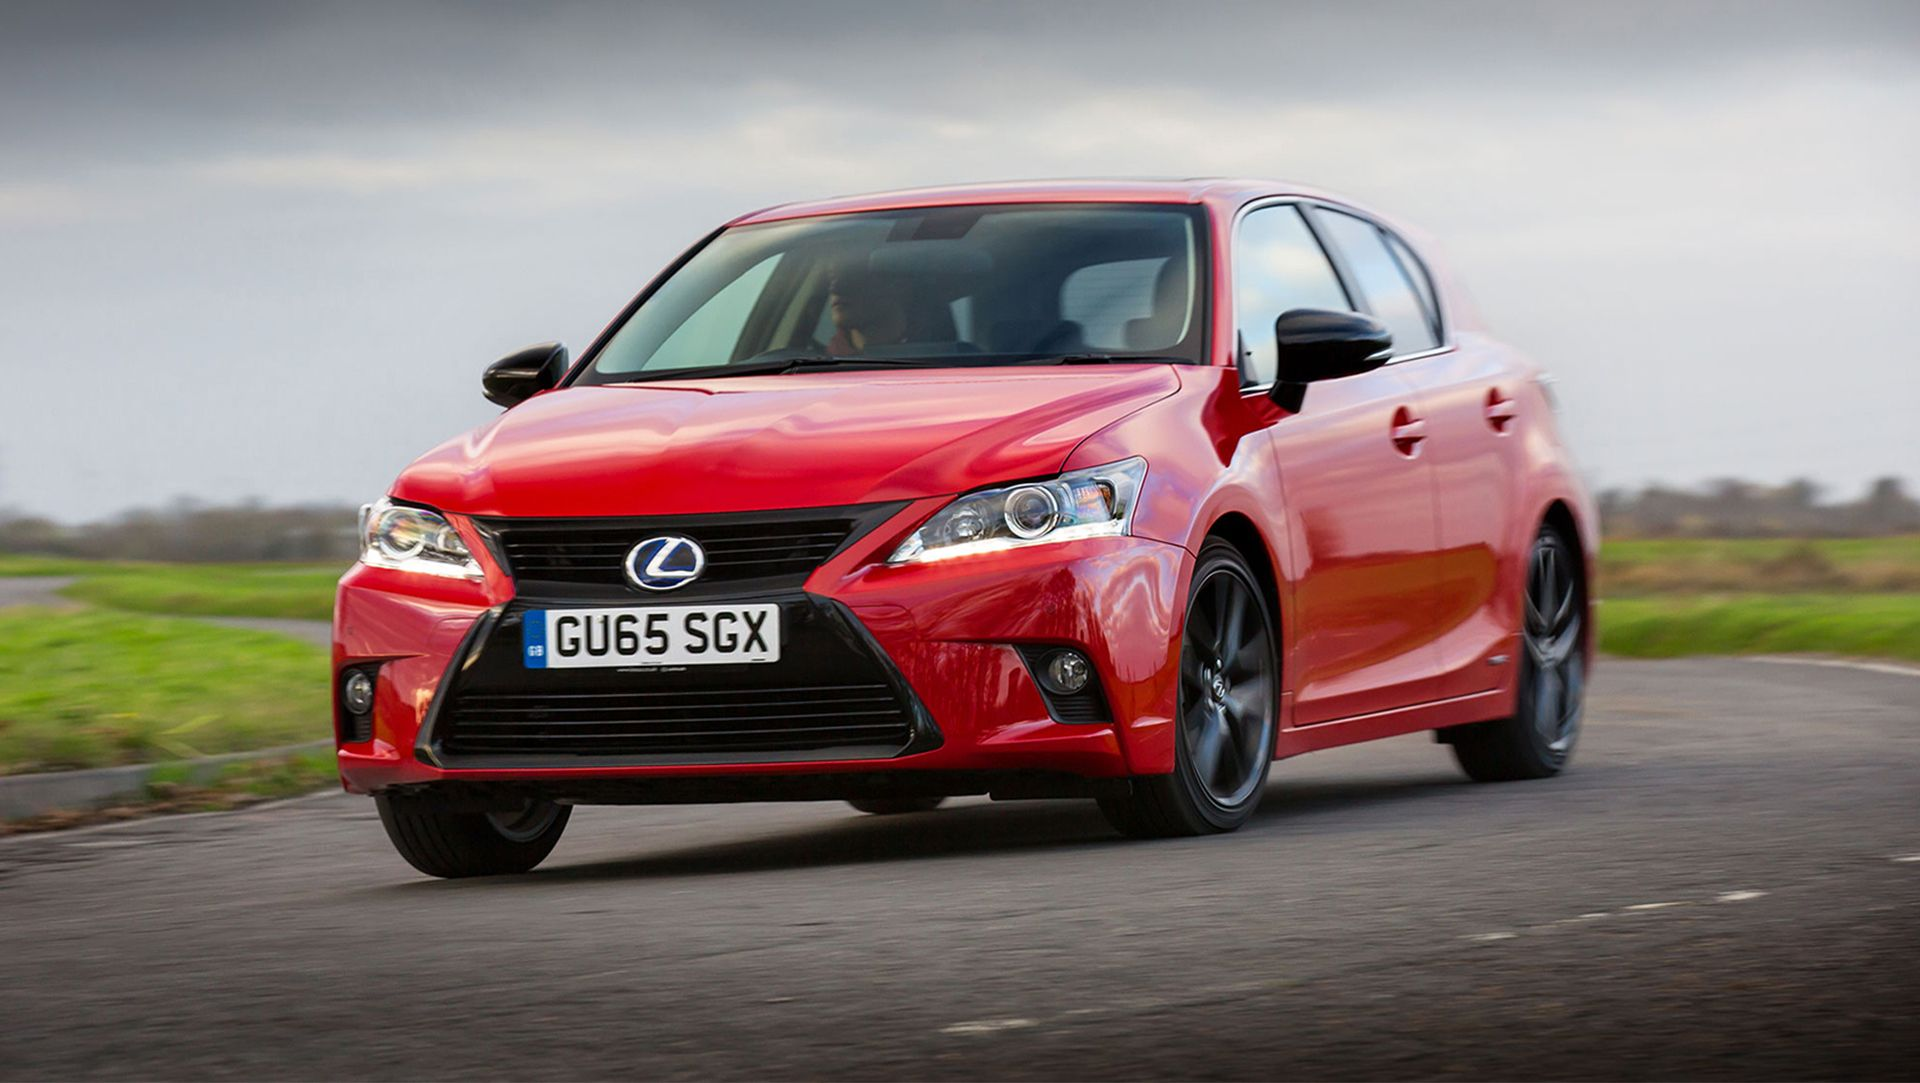 Lexus UK has released photos and details on the new CT